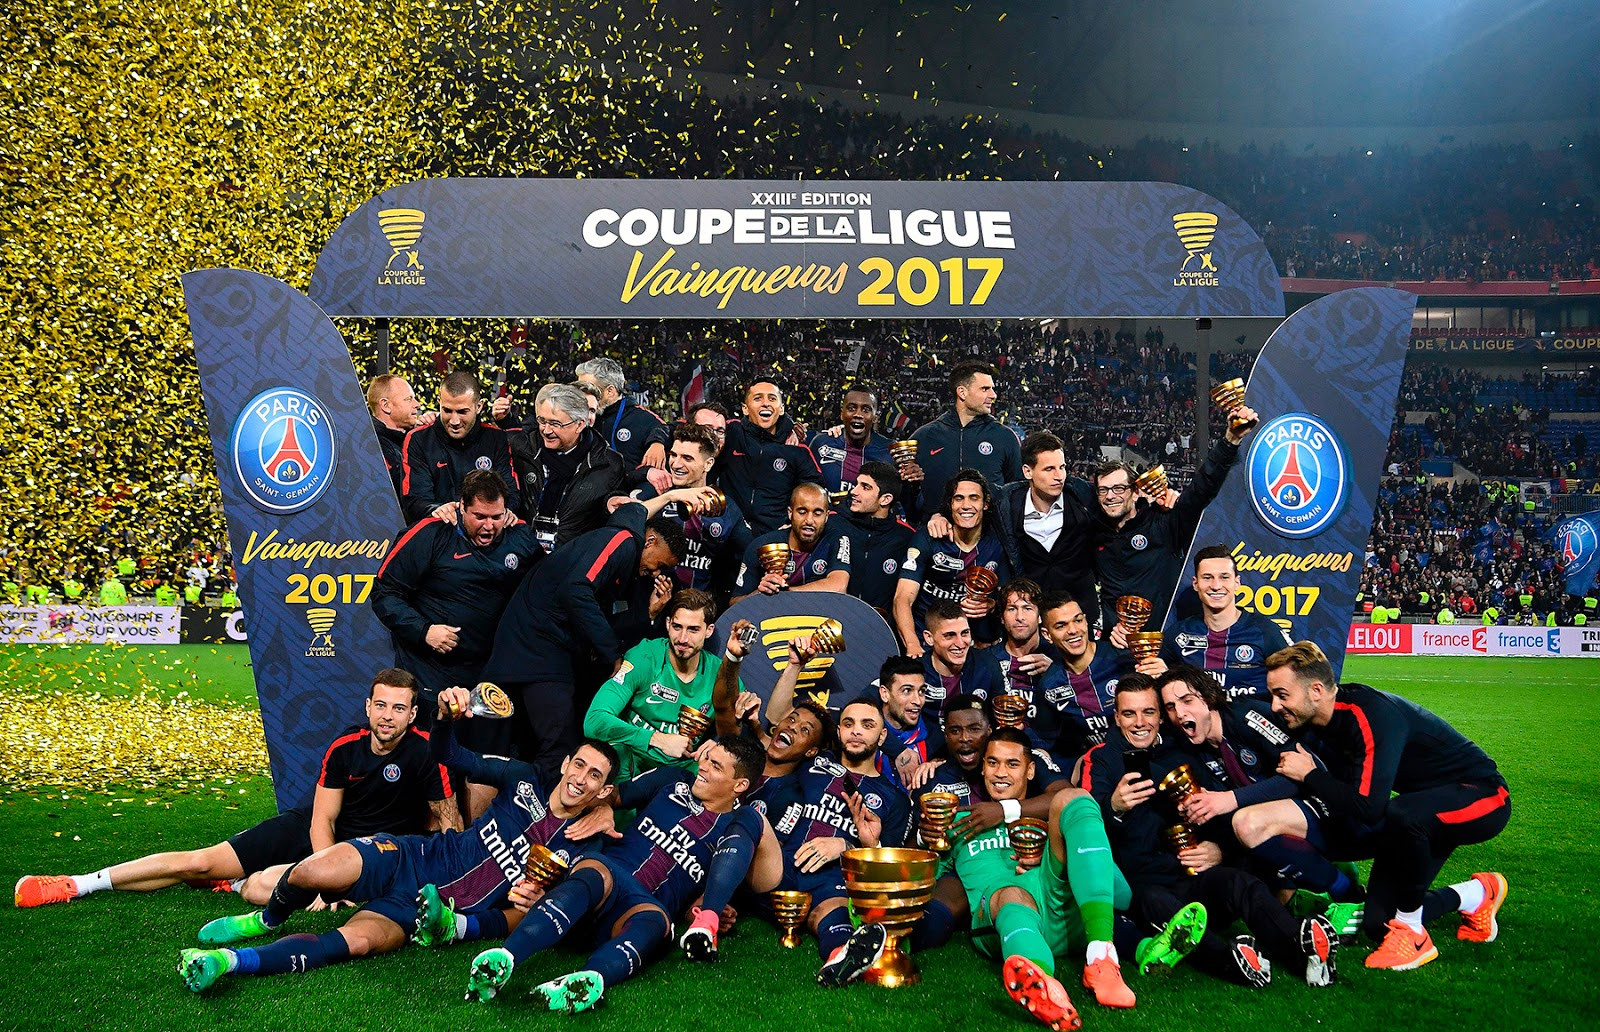 French coupe de la ligue final ebuzzdaily - Coupe de la ligue streaming ...